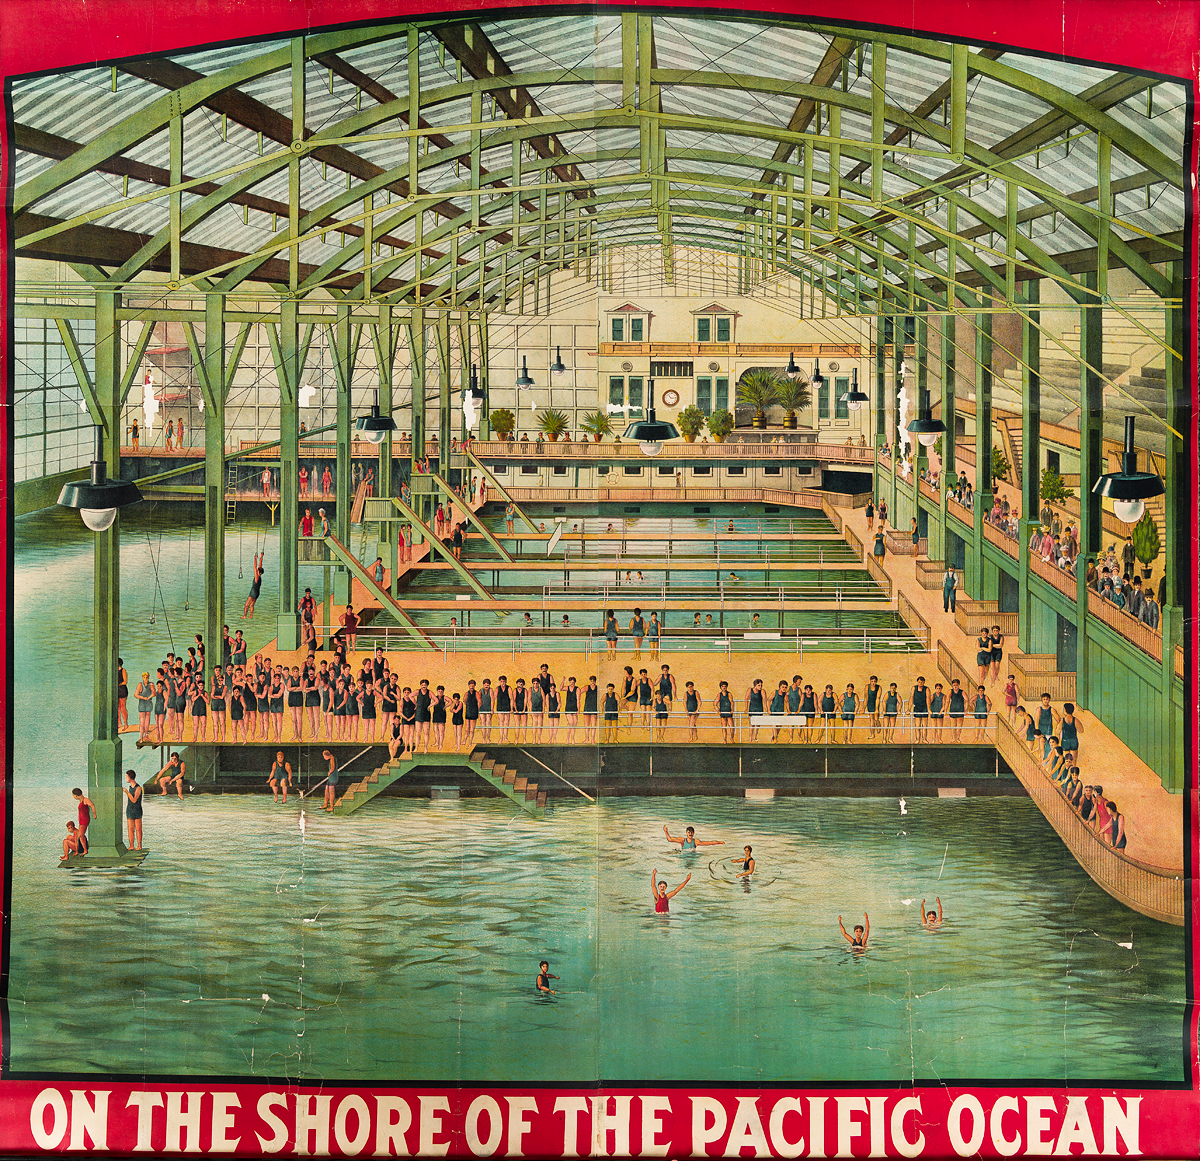 DESIGNER UNKNOWN. [SUTRO BATHS] / ON THE SHORE OF THE PACIFIC OCEAN. 1896. 78x80 inches, 198x203 cm.